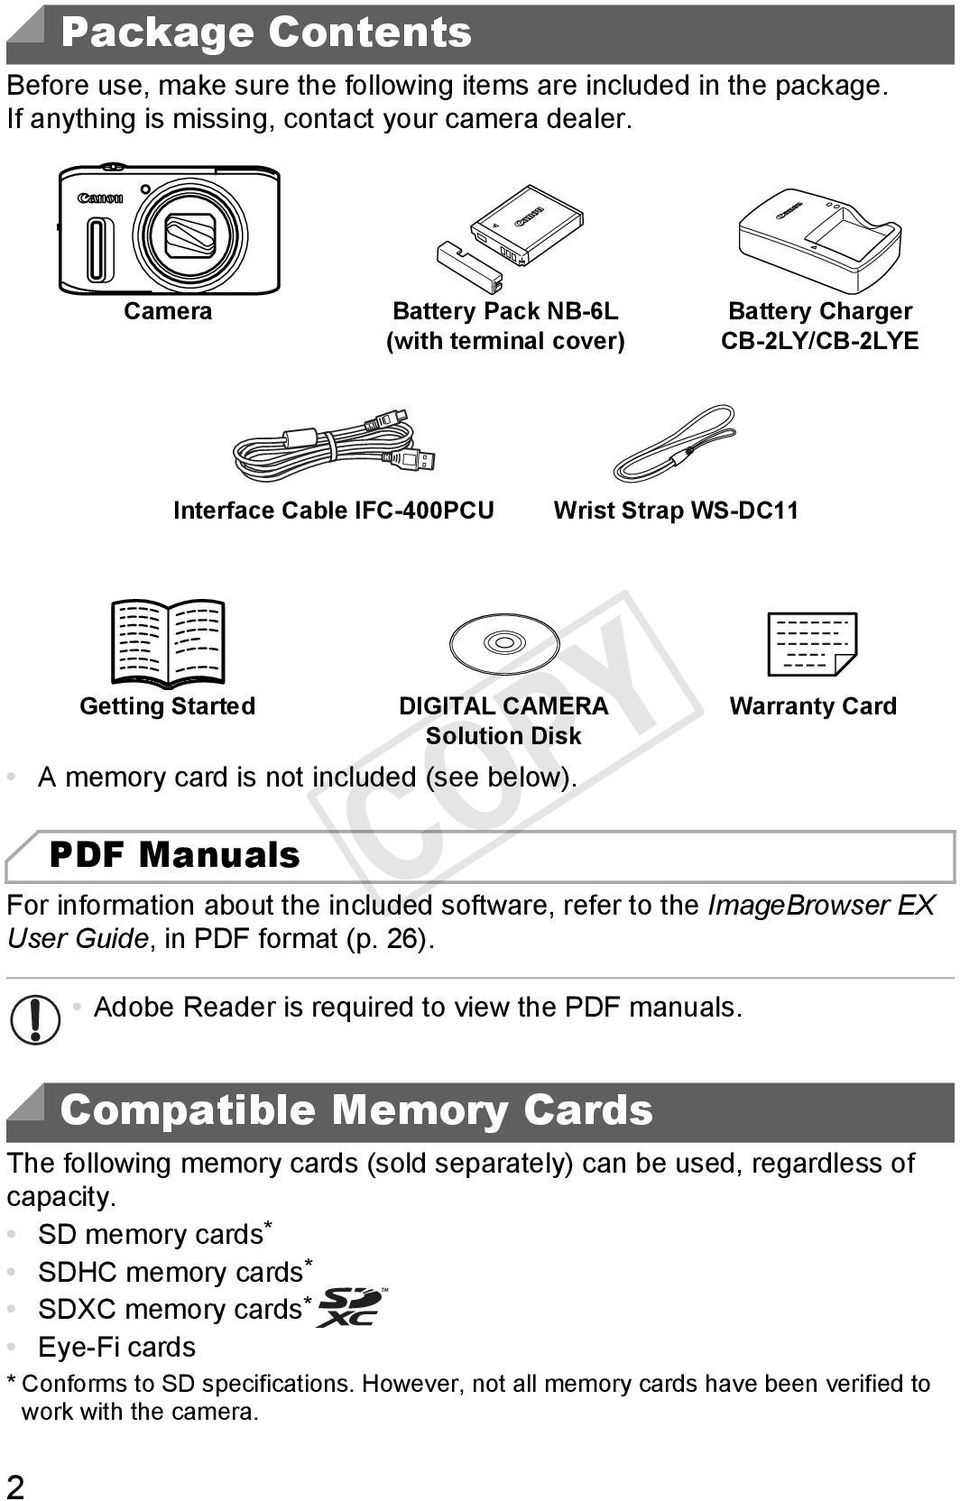 PDF Manuals DIGITAL CAMERA Solution Disk For information about the included software, refer to the ImageBrowser EX User Guide, in PDF format (p. 26). Adobe Reader is required to view the PDF manuals.